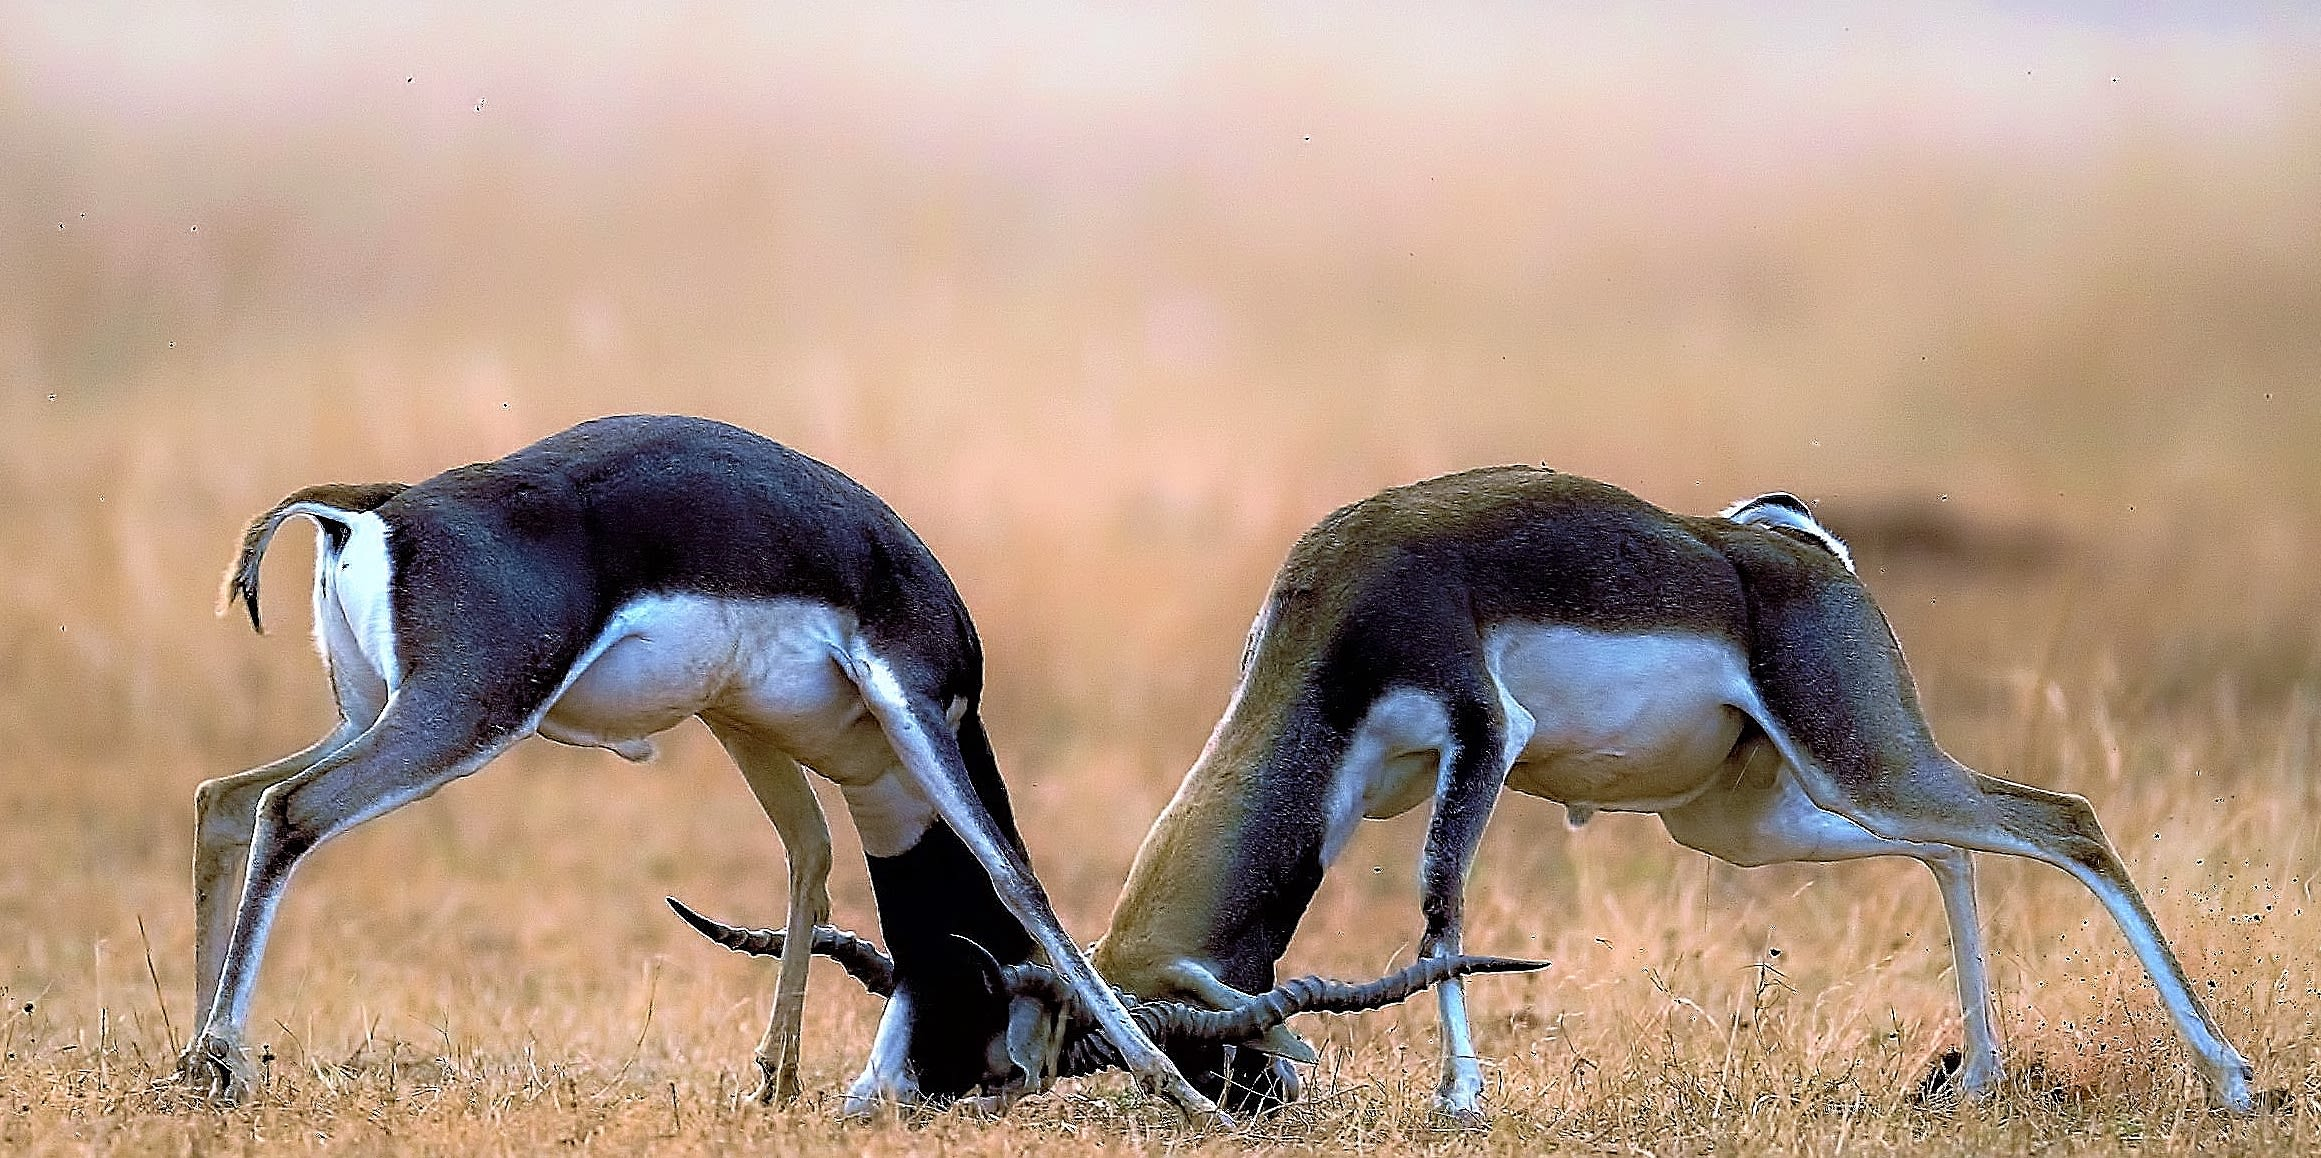 Blackbucks are an endangered species endemic to the Indian subcontinent. Male blackbucks establish dominance, territory, and access to females during the rutting season through fights.